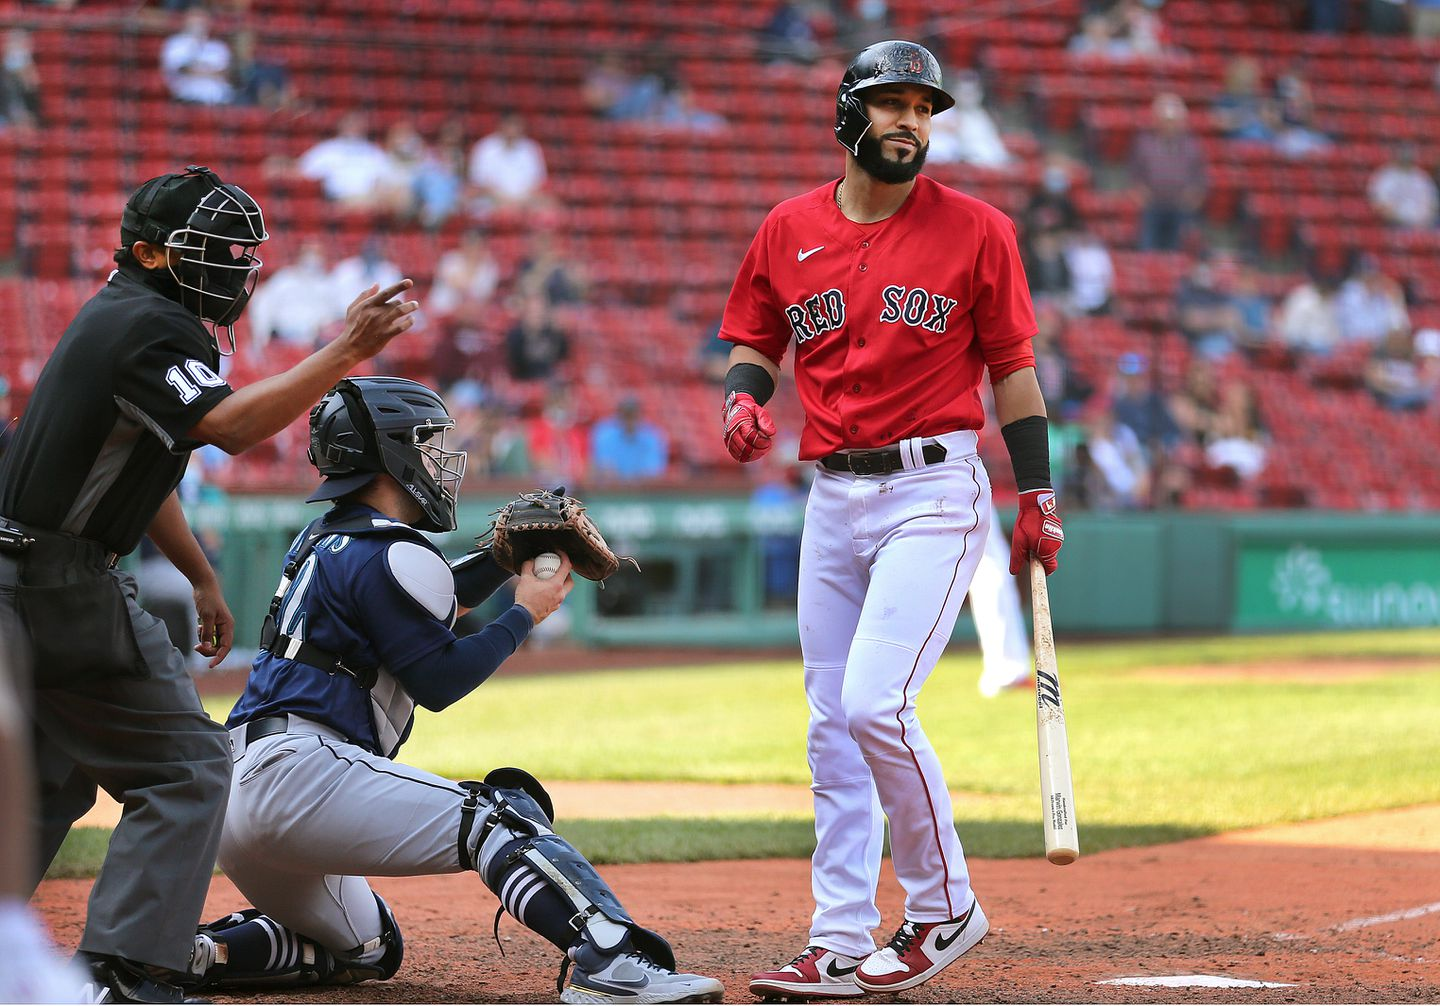 Marwin Gonzalez was released on August 16 with a batting average of .202.